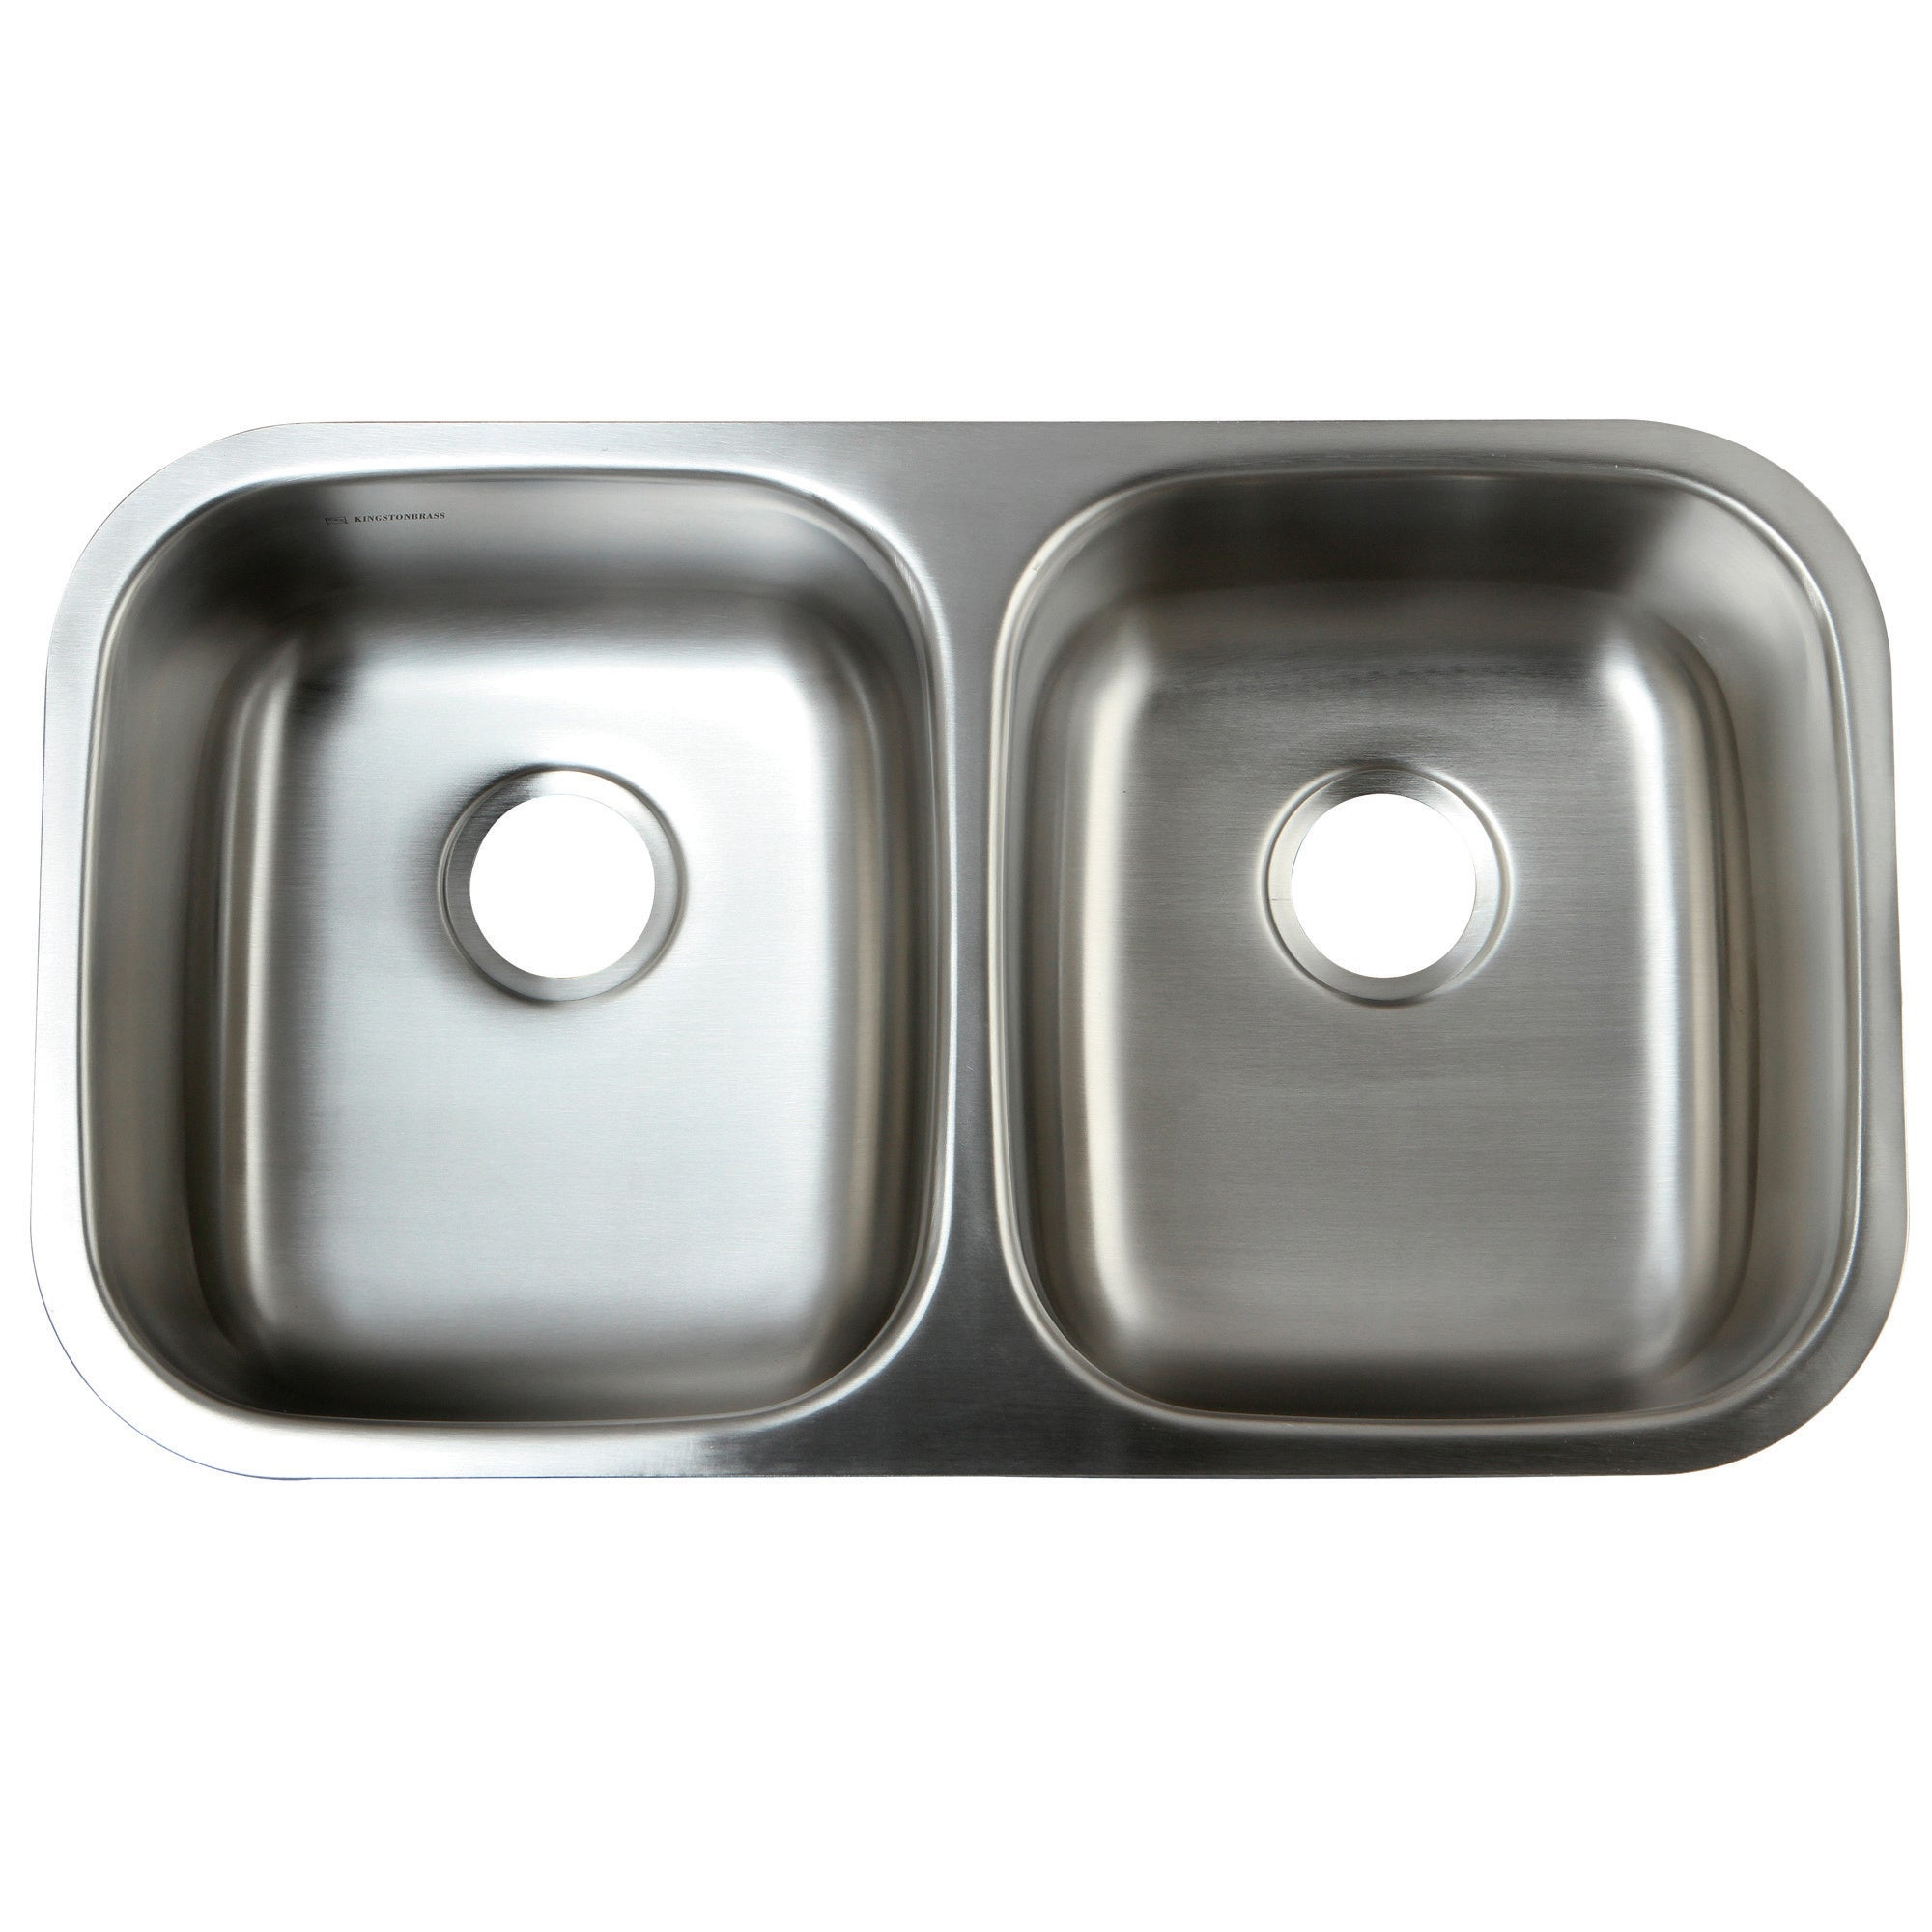 Stainless steel 31 inch undermount double bowl 18 gauge kitchen sink stainless steel 31 inch undermount double bowl 18 gauge kitchen sink free shipping today overstock 13804302 workwithnaturefo